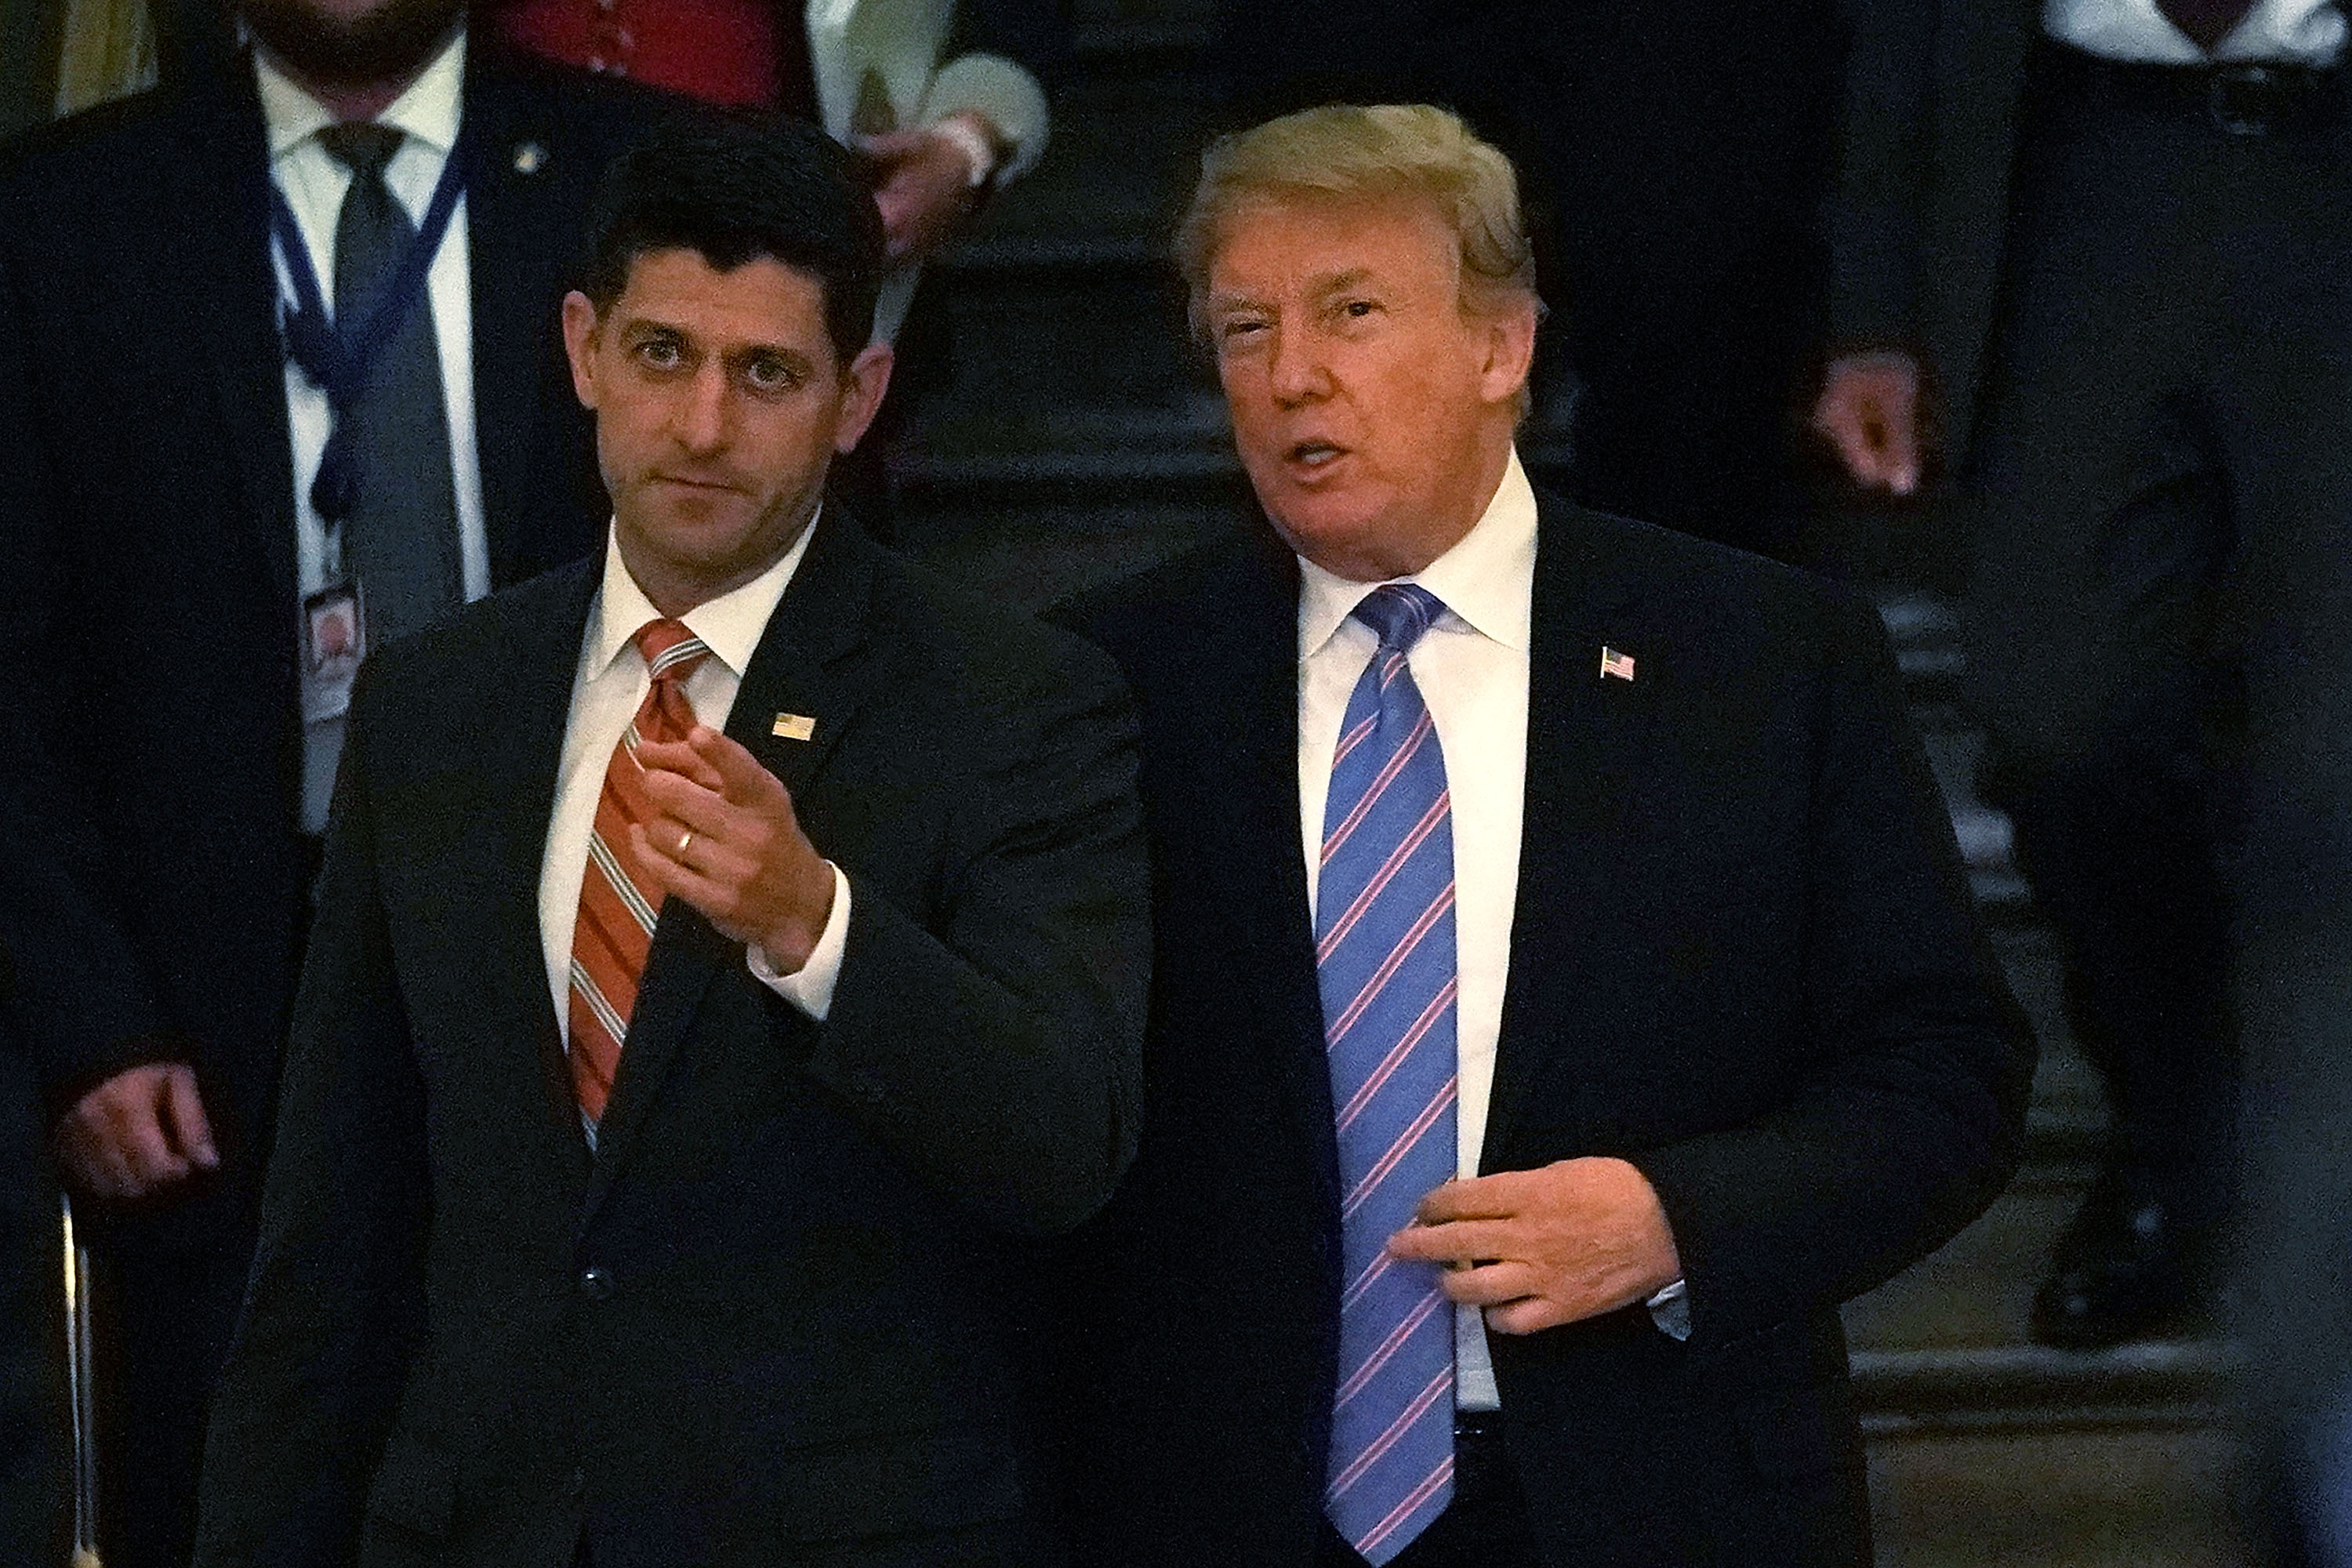 Speaker Ryan and President Trump on the Hill yesterday.